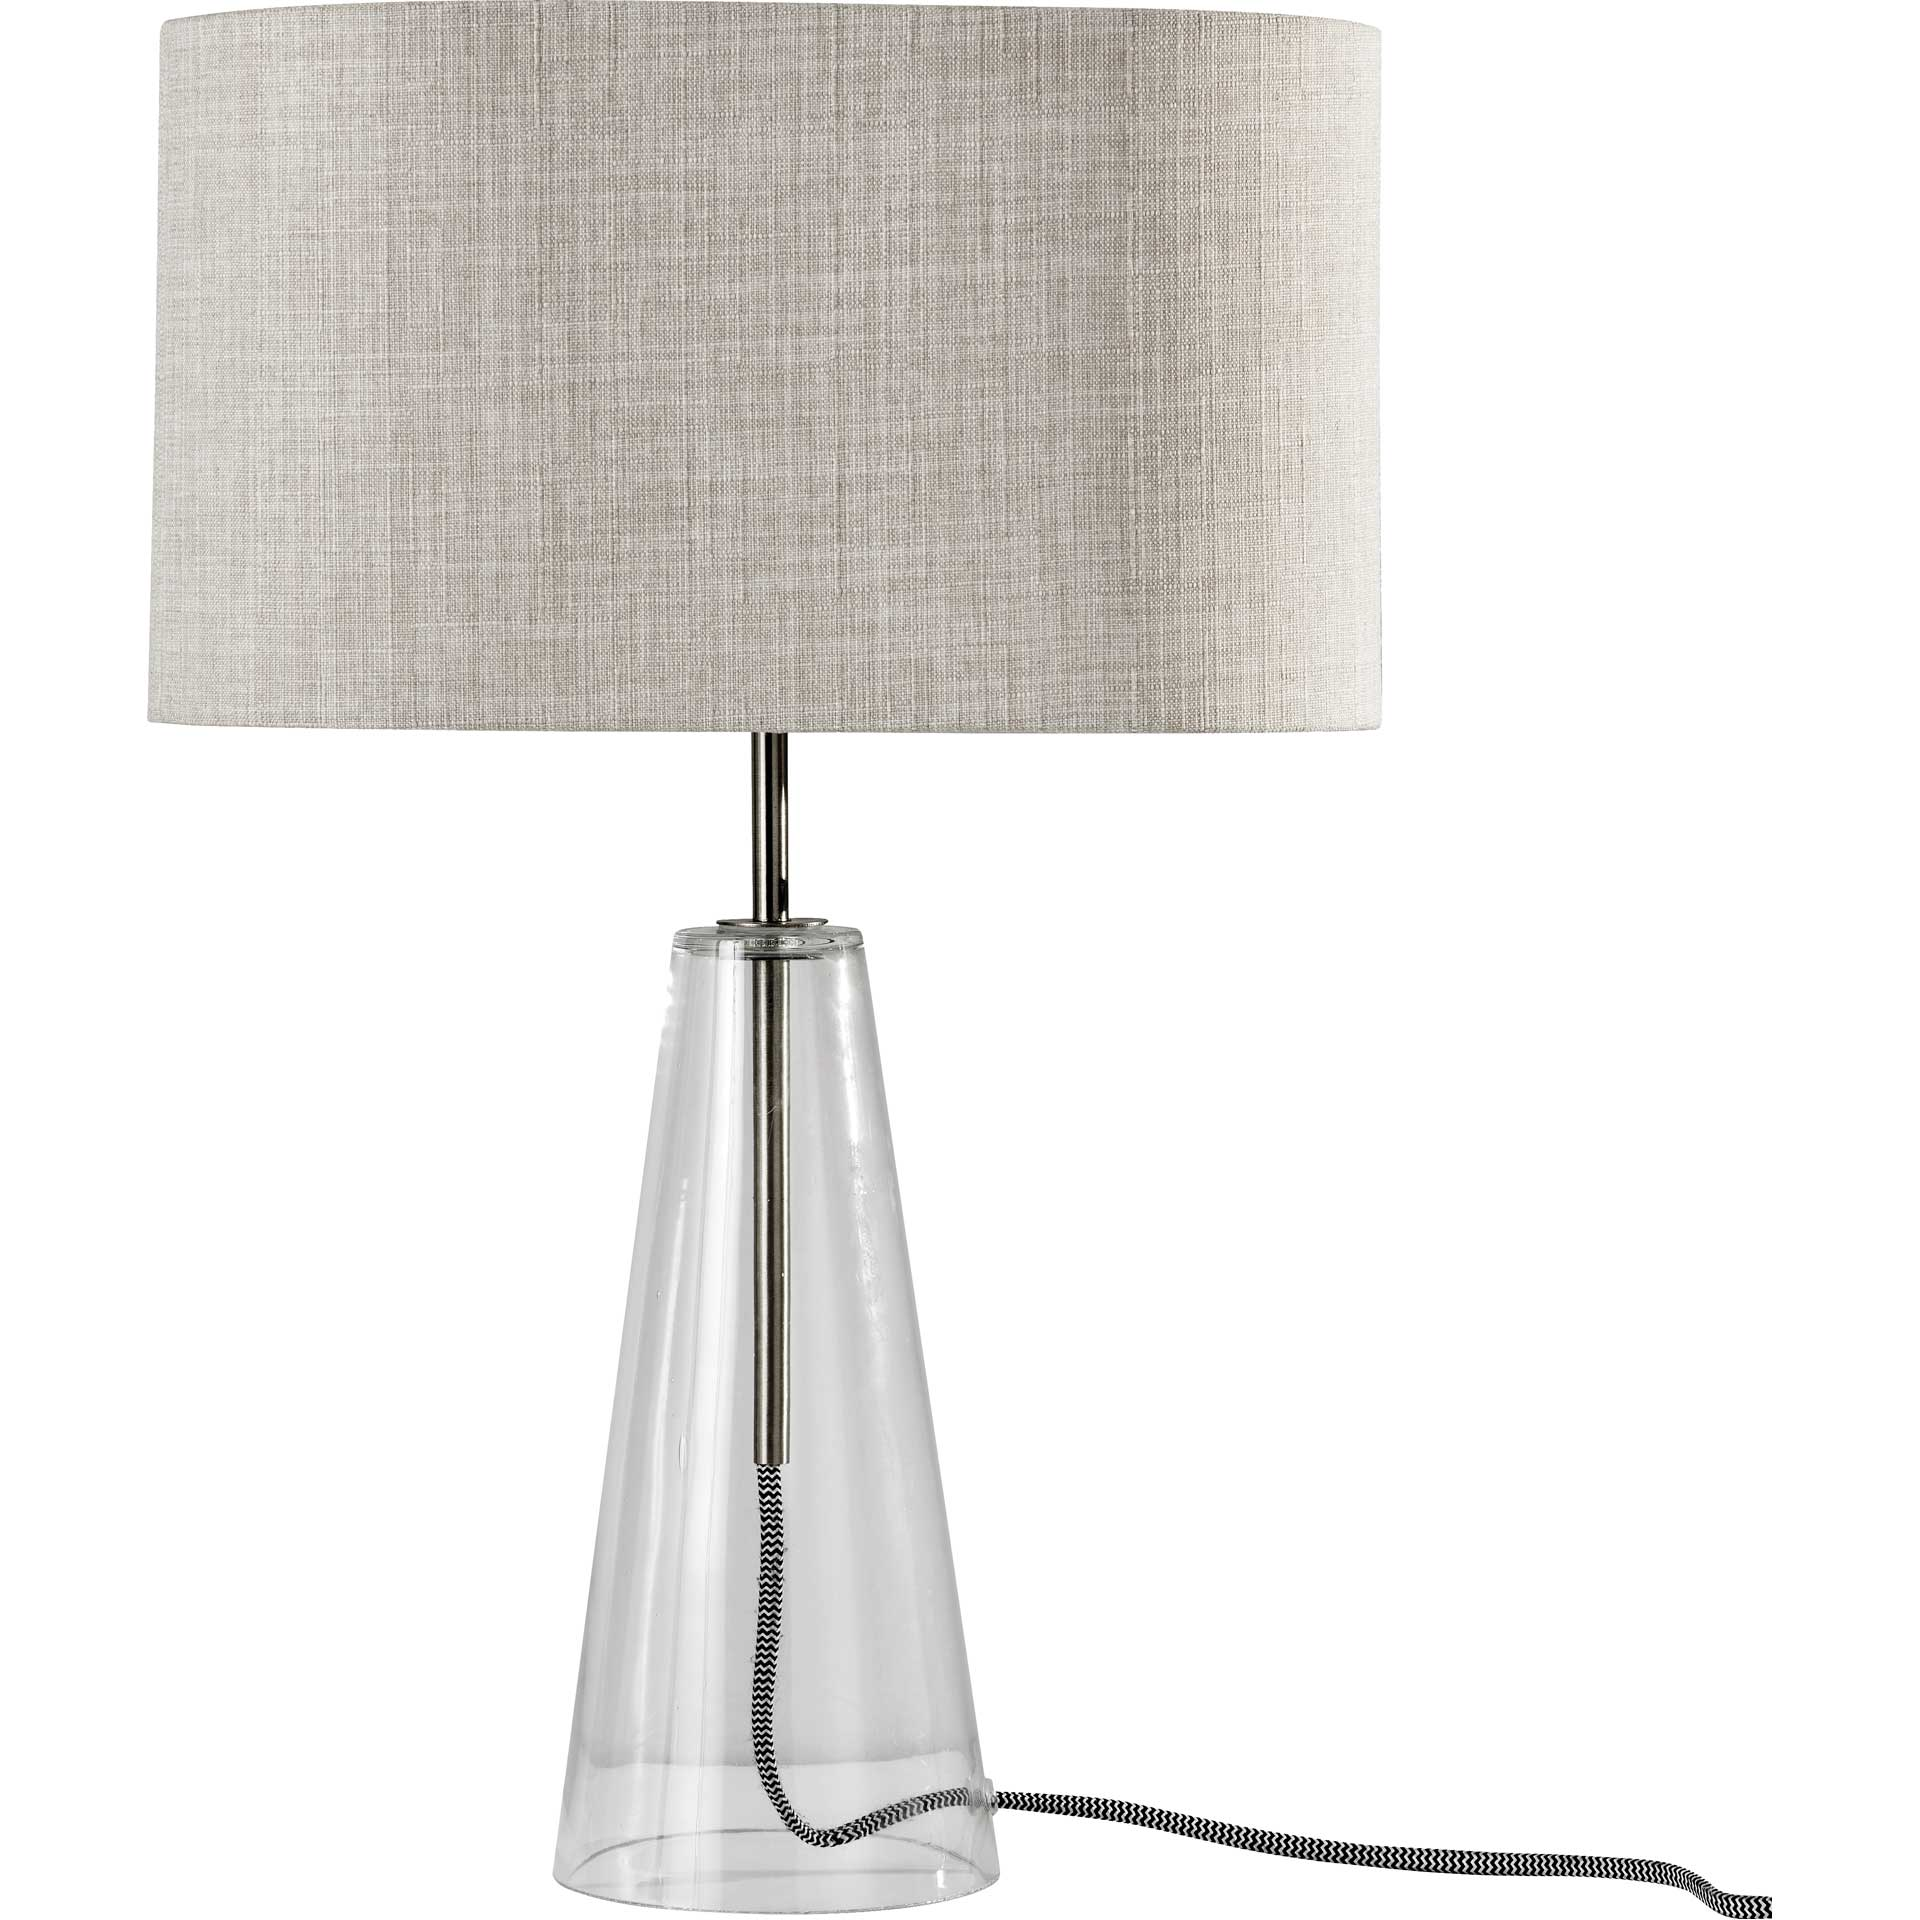 Aarhus Table Lamp Brushed Steel